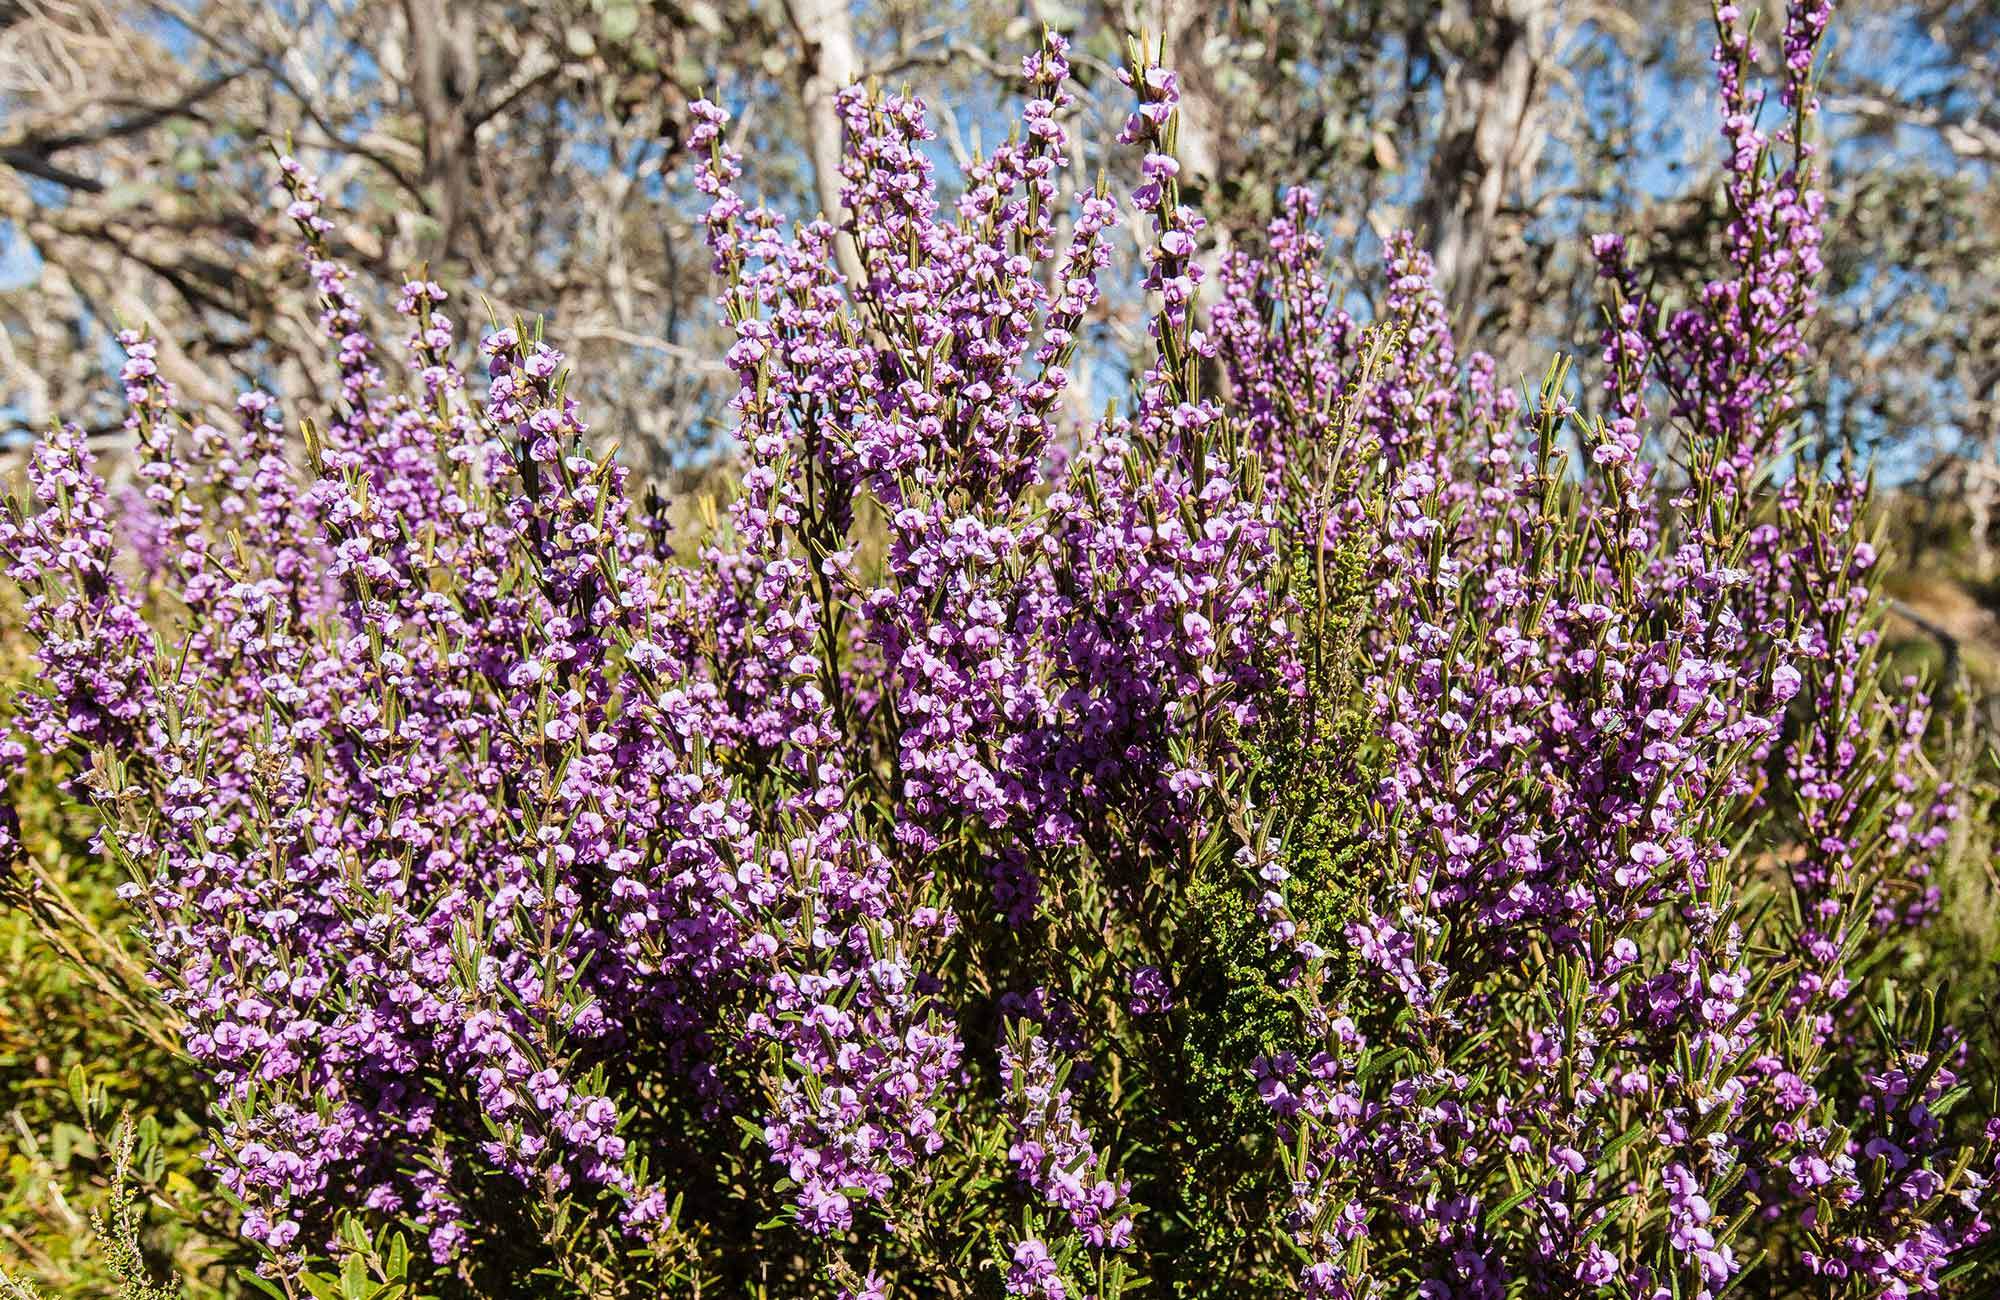 Purple mountain hovea wildflowers, Kosciuszko National Park. Photo: Murray Vanderveer